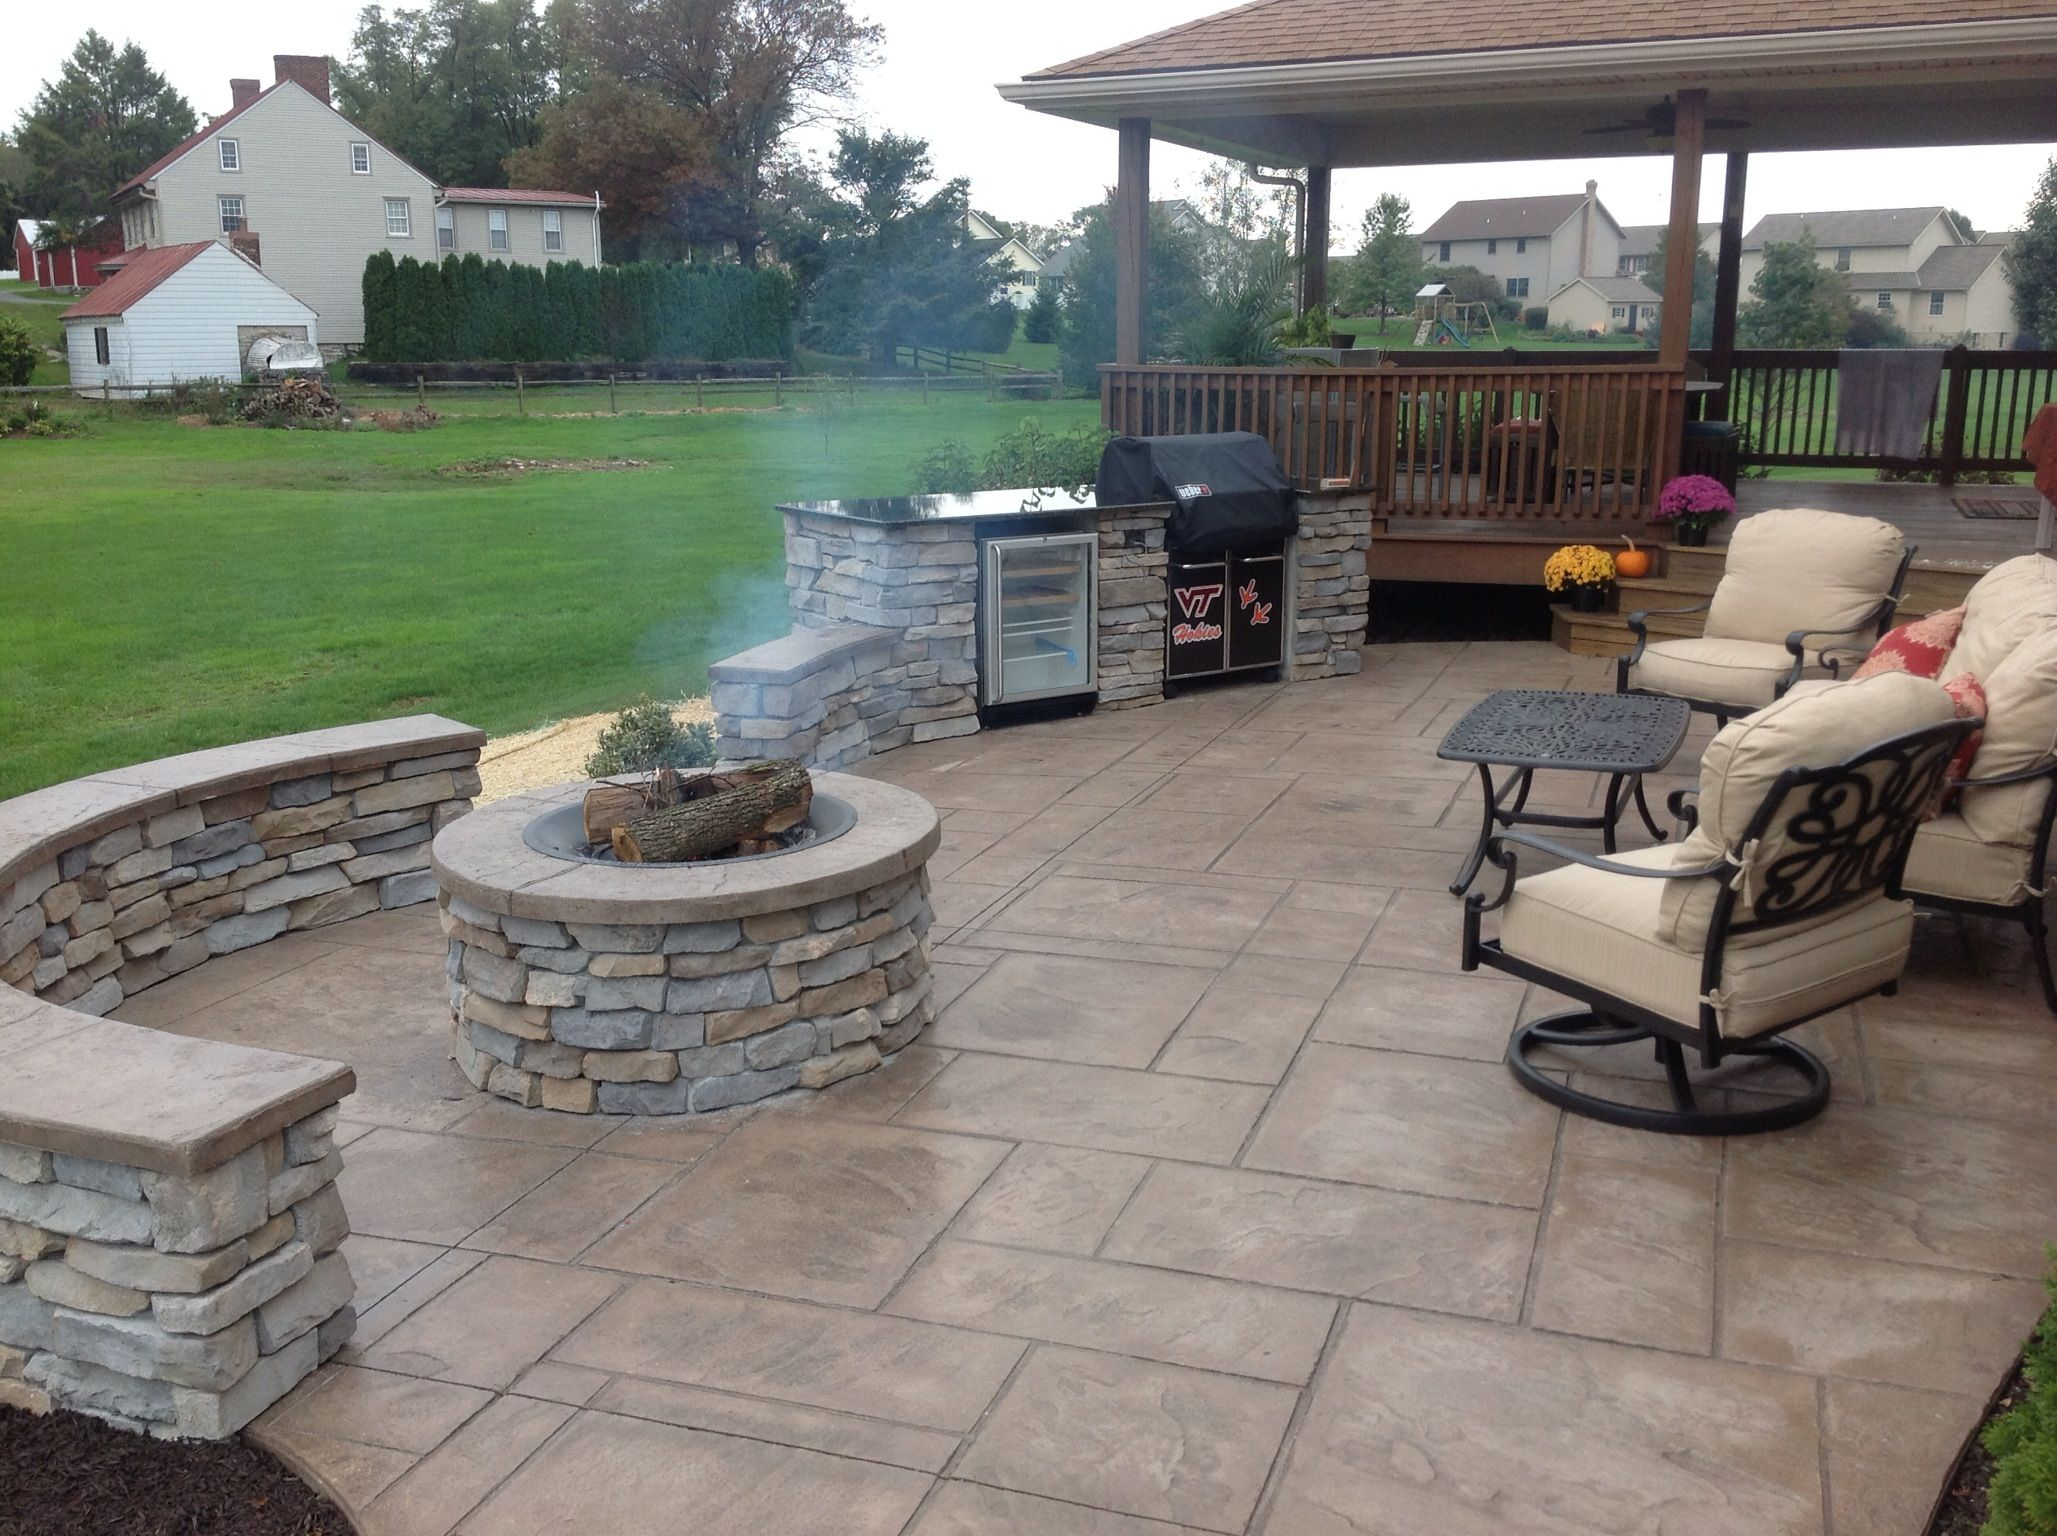 Stamped Concrete Patio With Stone Veneer Wall Grill Station And